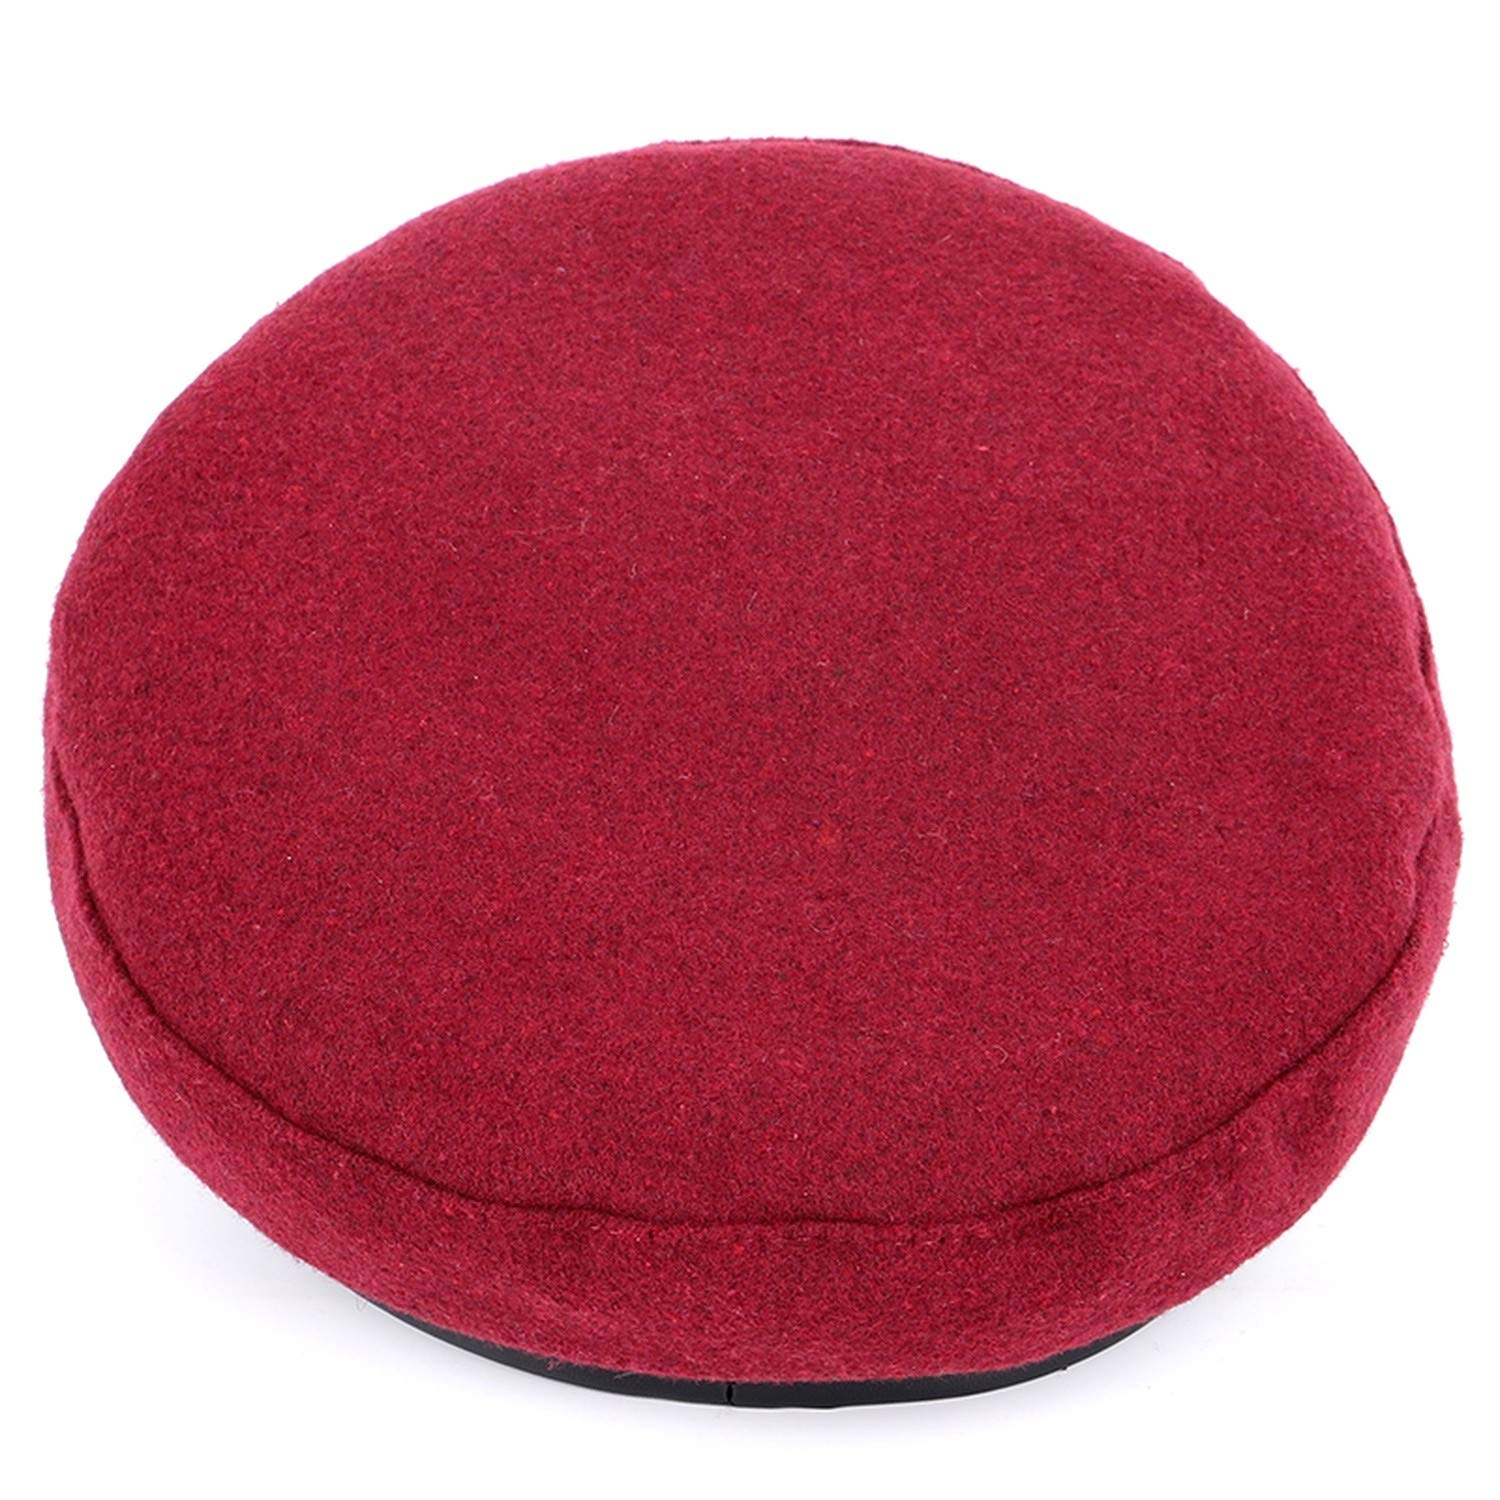 2018 Wool Casual Military Hats Womans Flat Top Hat Beret Faux Leather Cotton